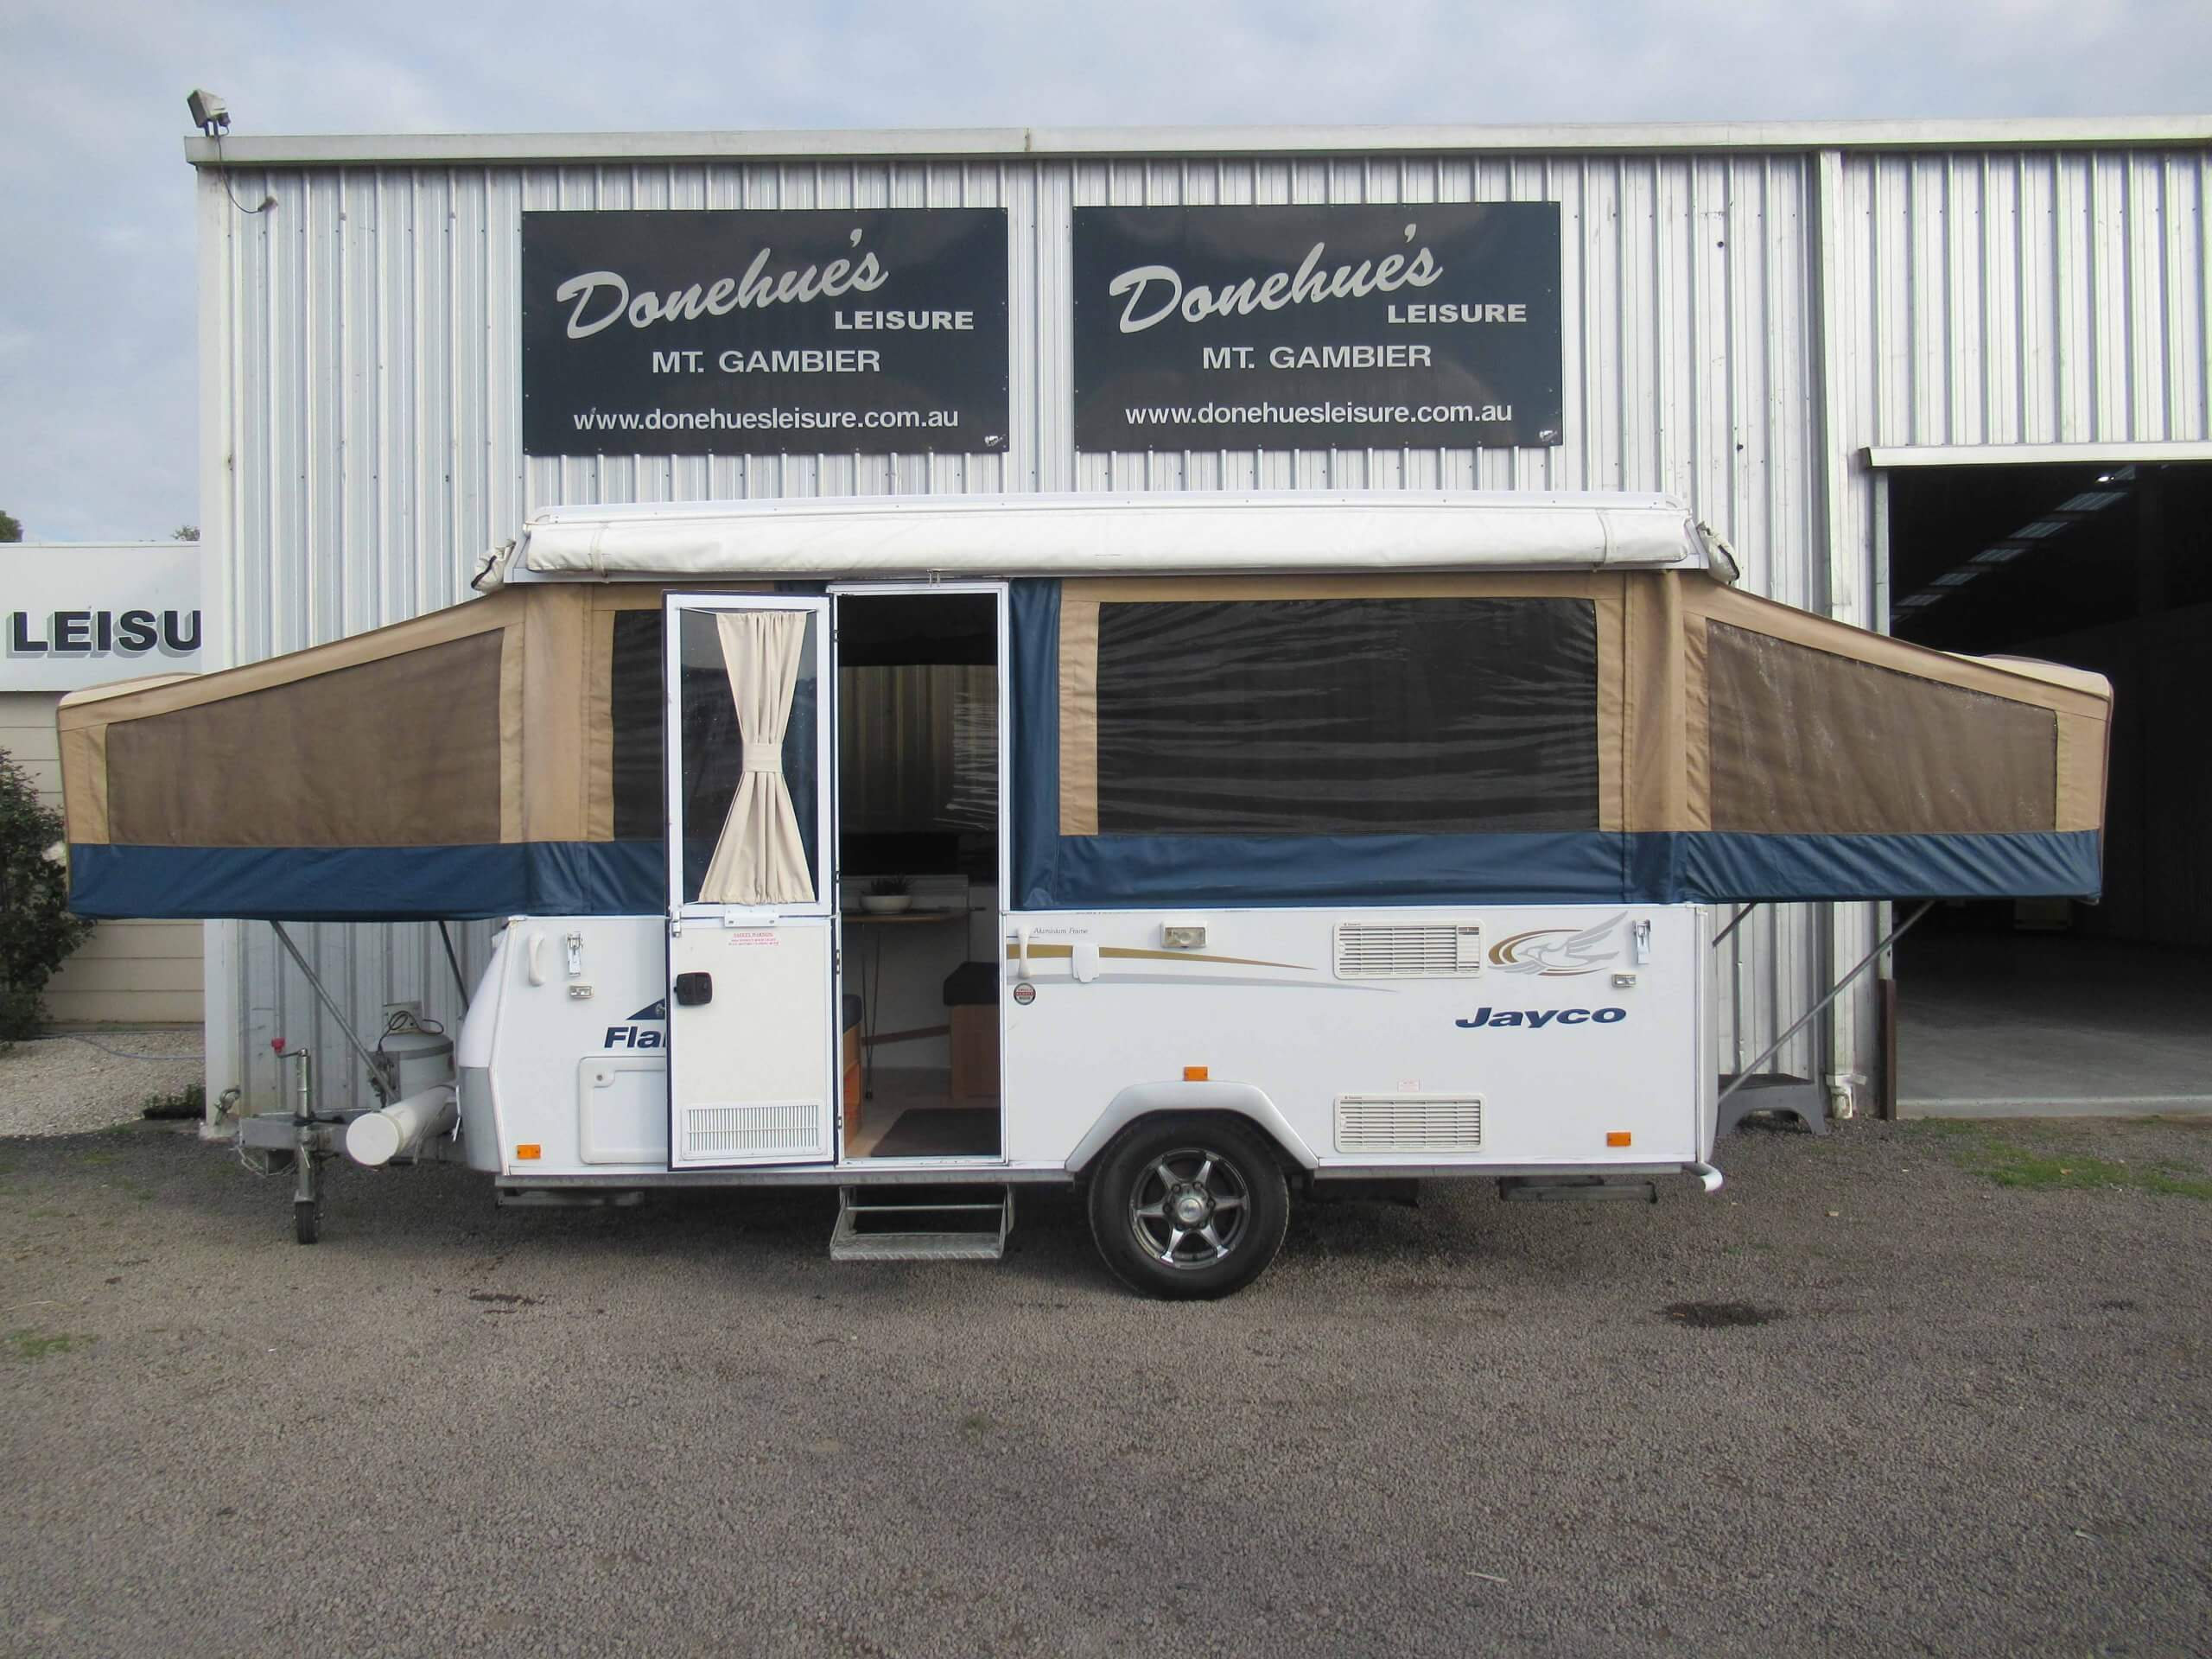 Donehues Leisure Used Jayco Flamingo Camper Mt Gambier 21881M